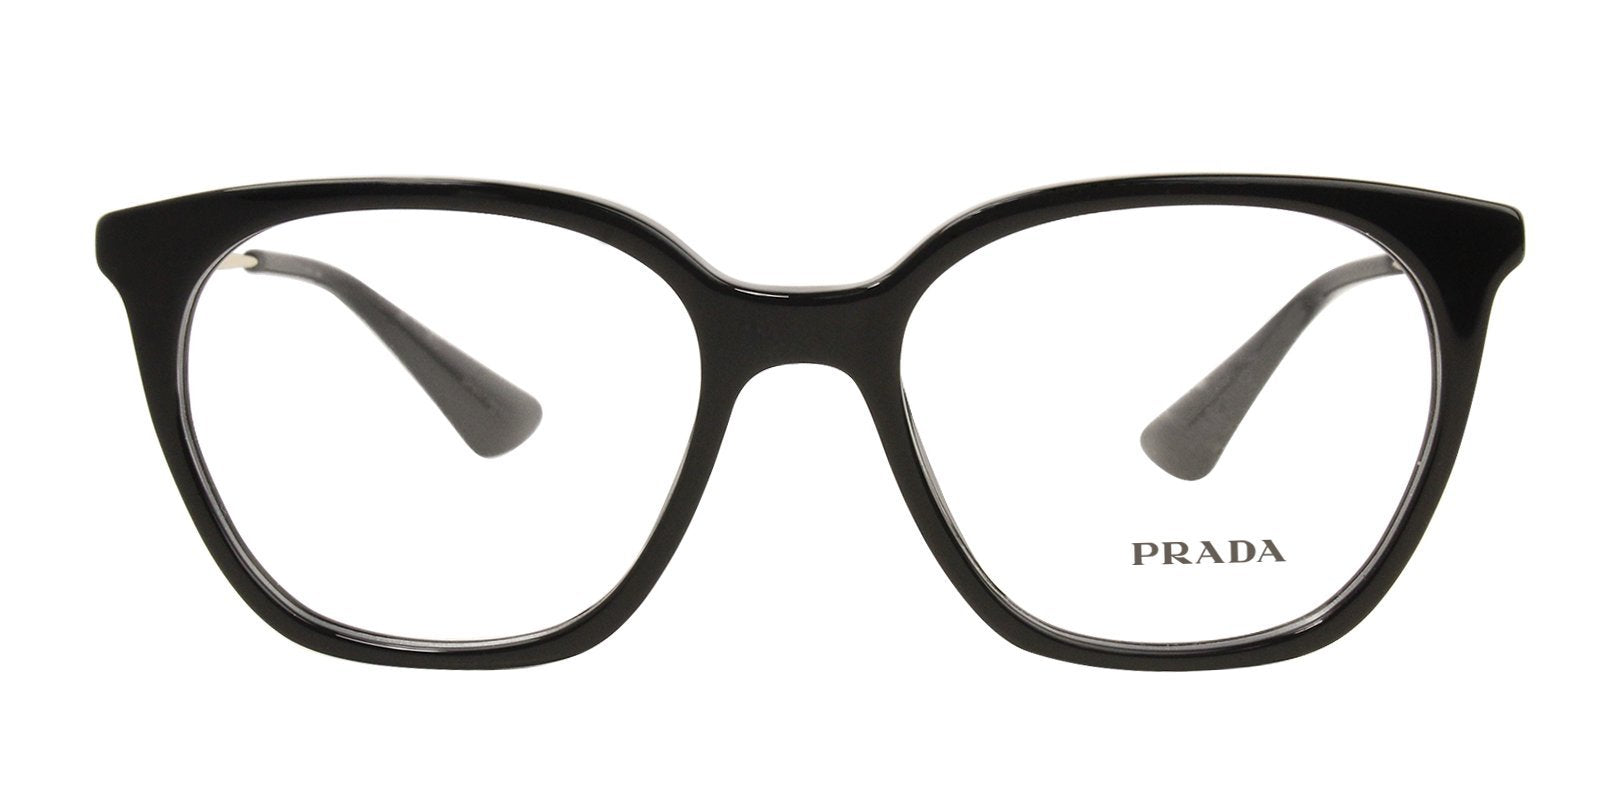 Prada - PR11TV Black/Clear Oval Women Eyeglasses - 51mm-Eyeglasses-Designer Eyes